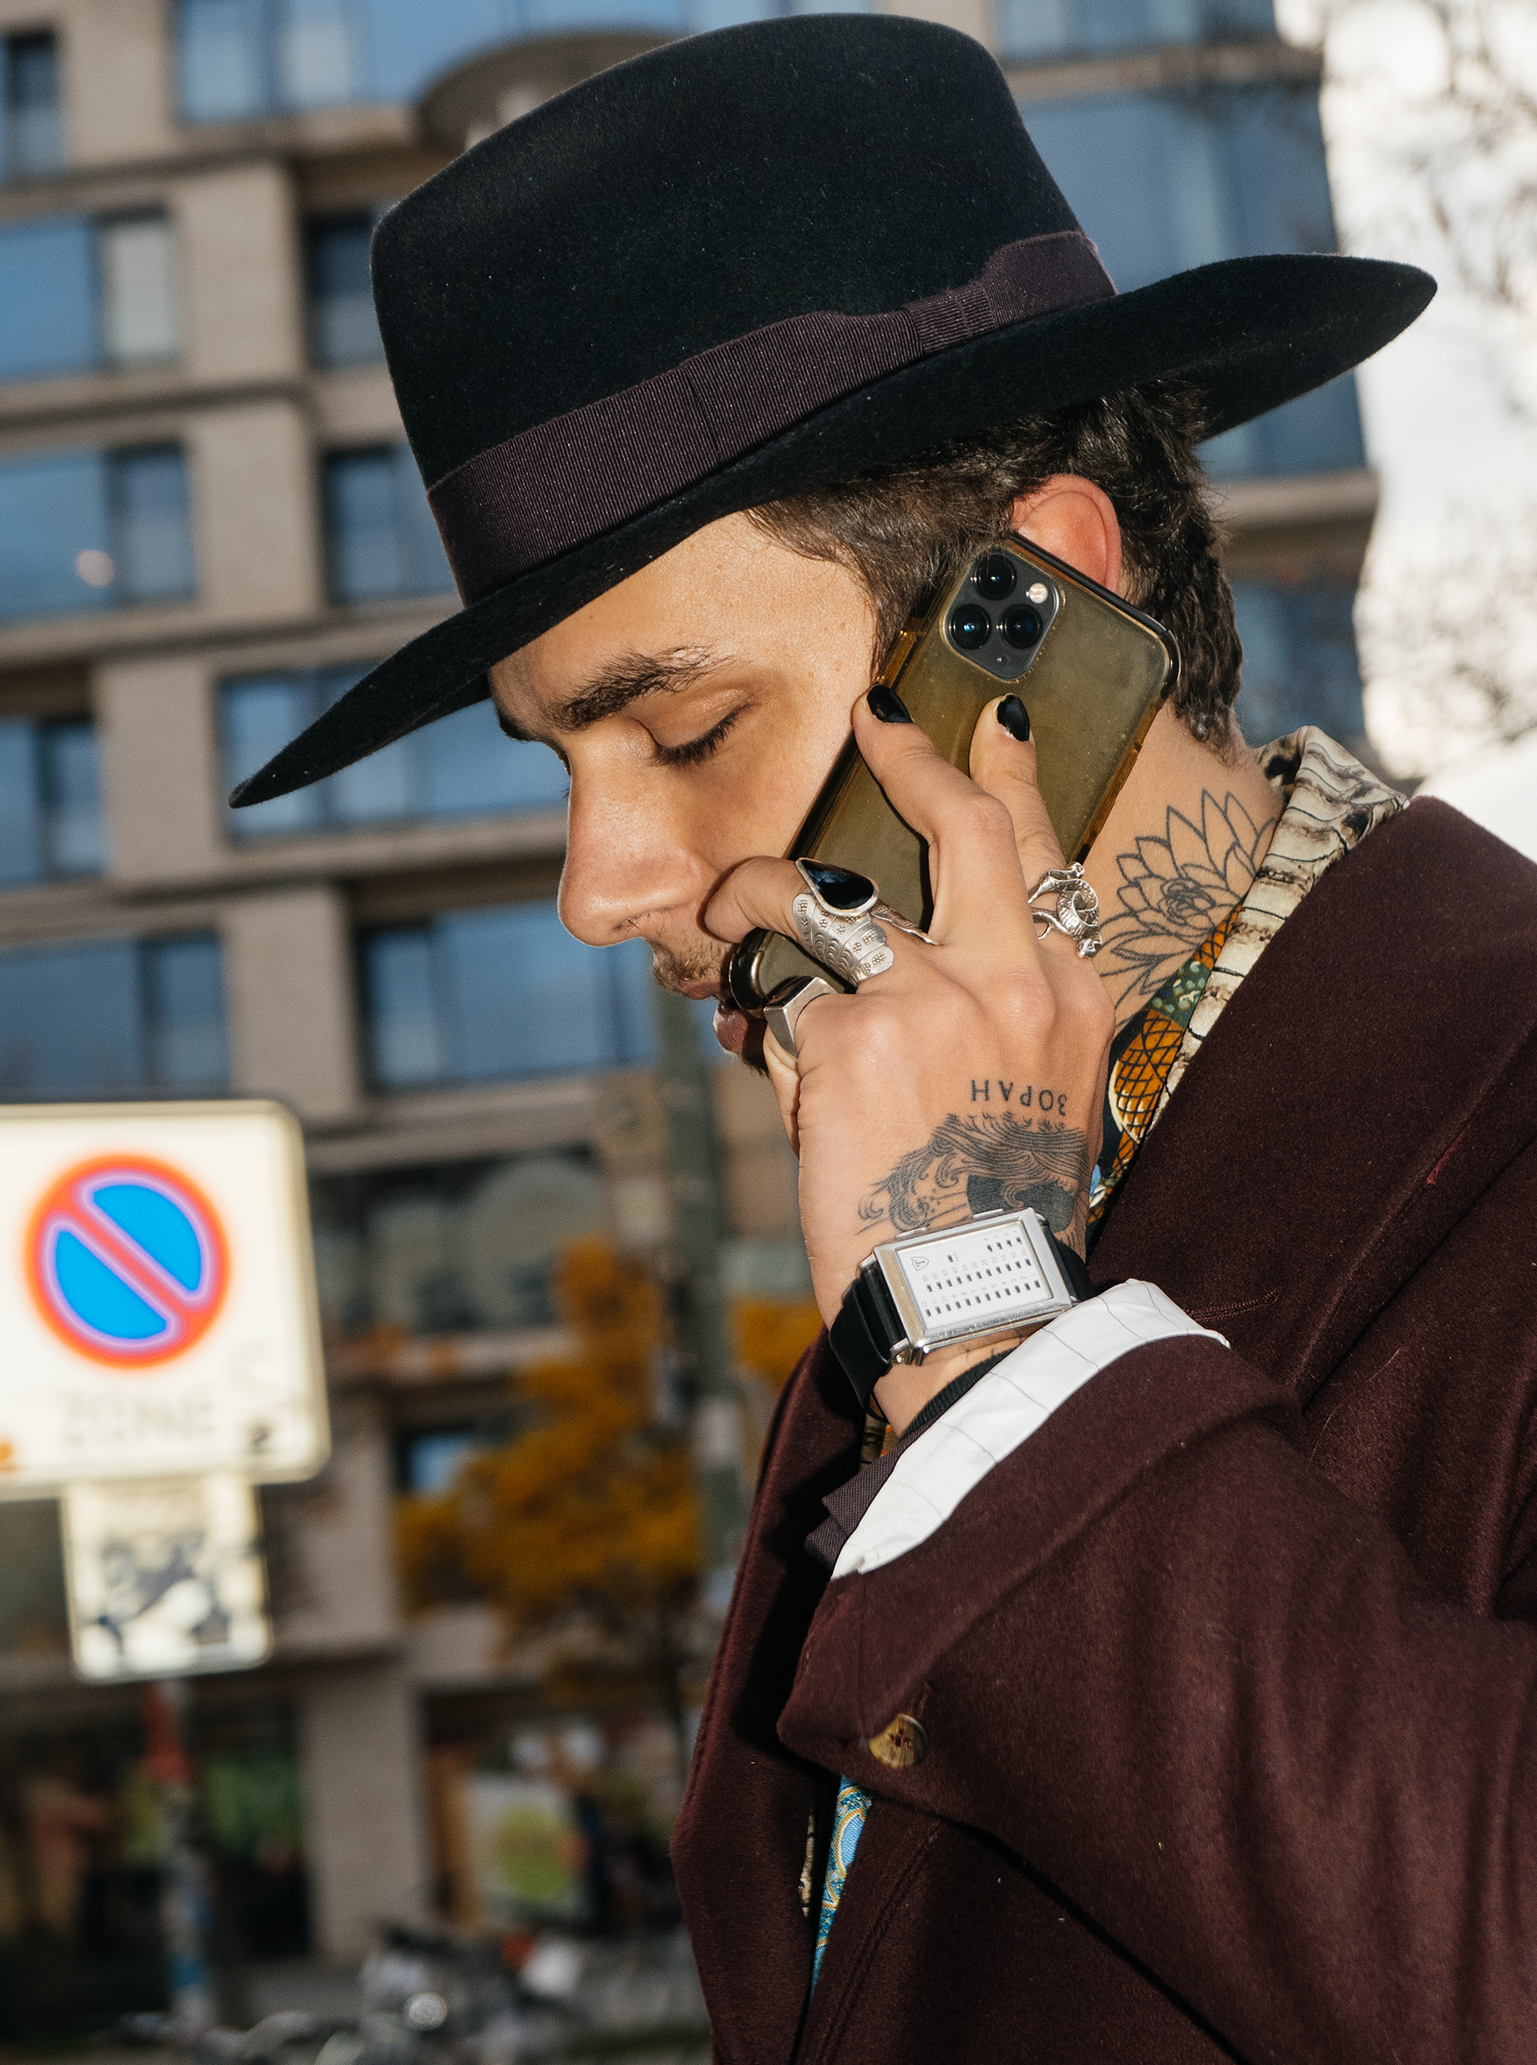 back to the good old days - Kuba Dabrowski on streetstyle in Berlin